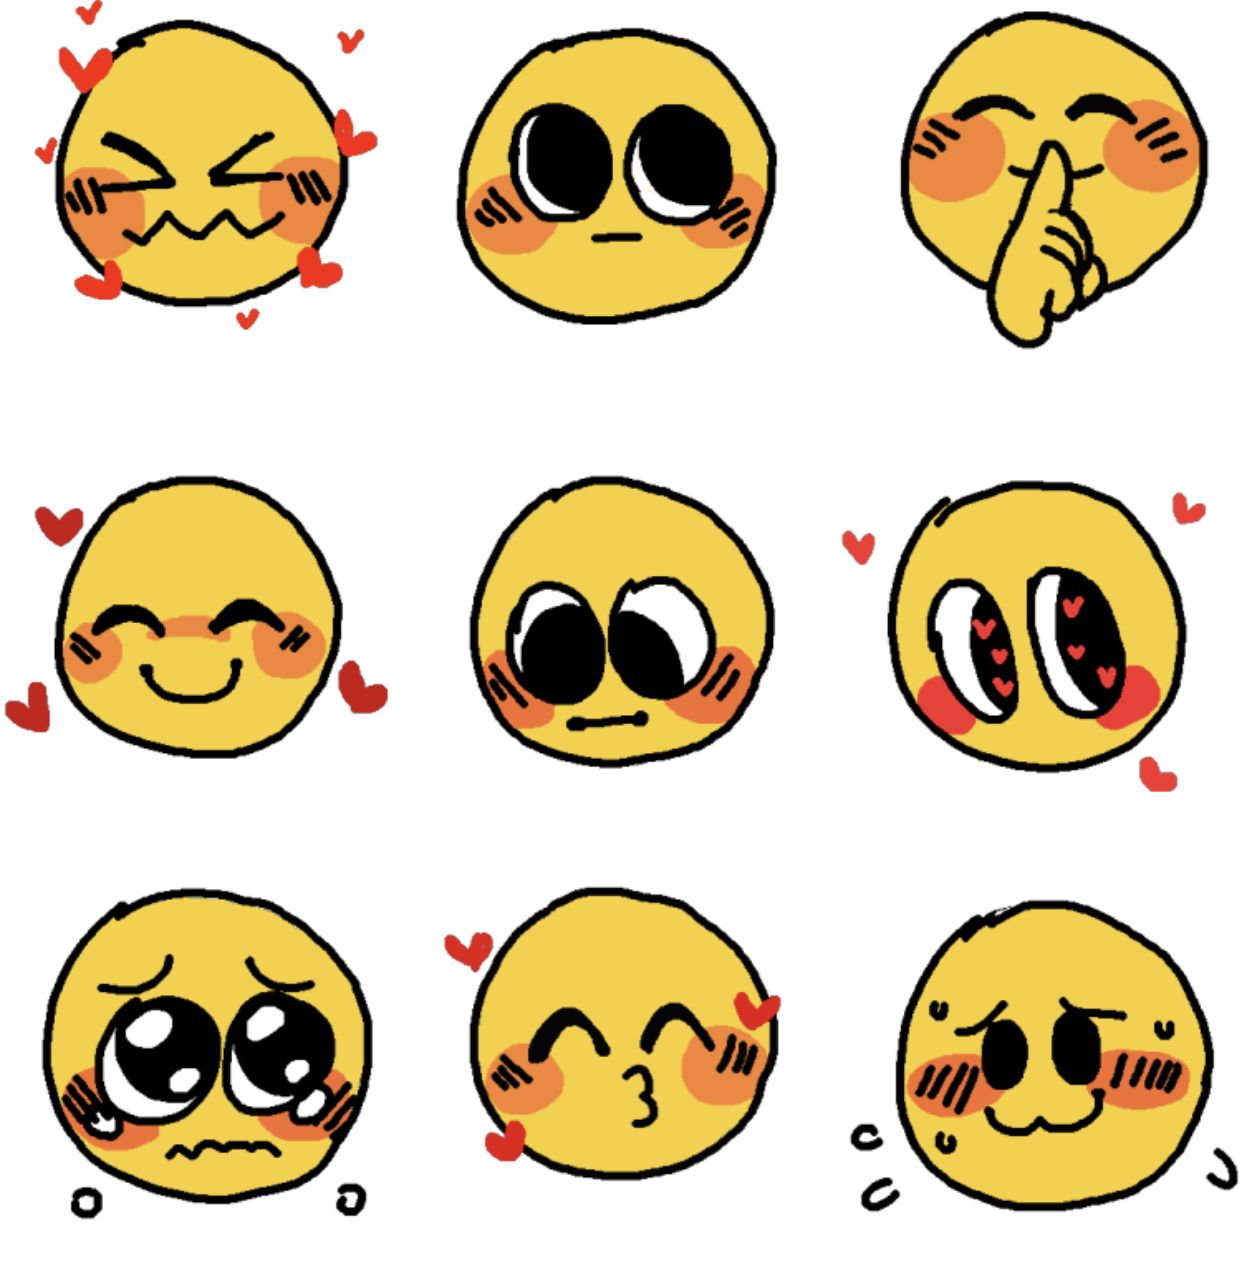 Pin By Hobishakes On Art Memes Drawing Expressions Emoji Art Drawing Face Expressions